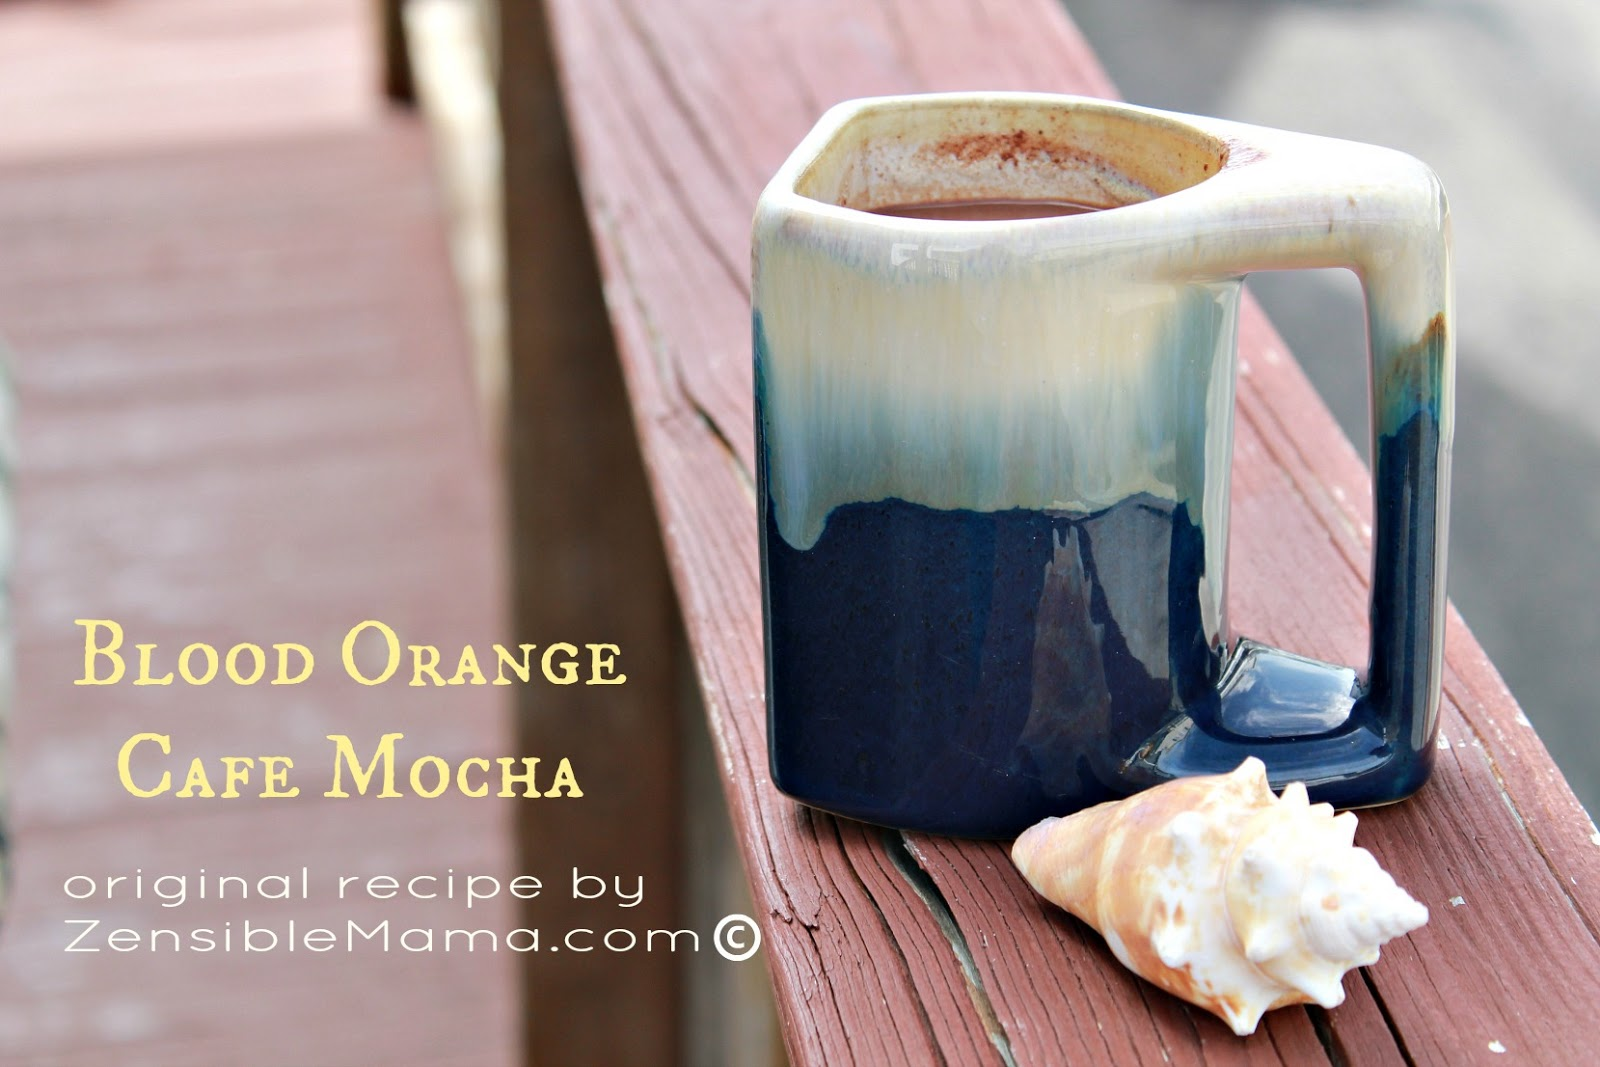 WELCOME WINTER with Our Yummy Original COFFEE RECIPES. You'll Love Them - Promise!